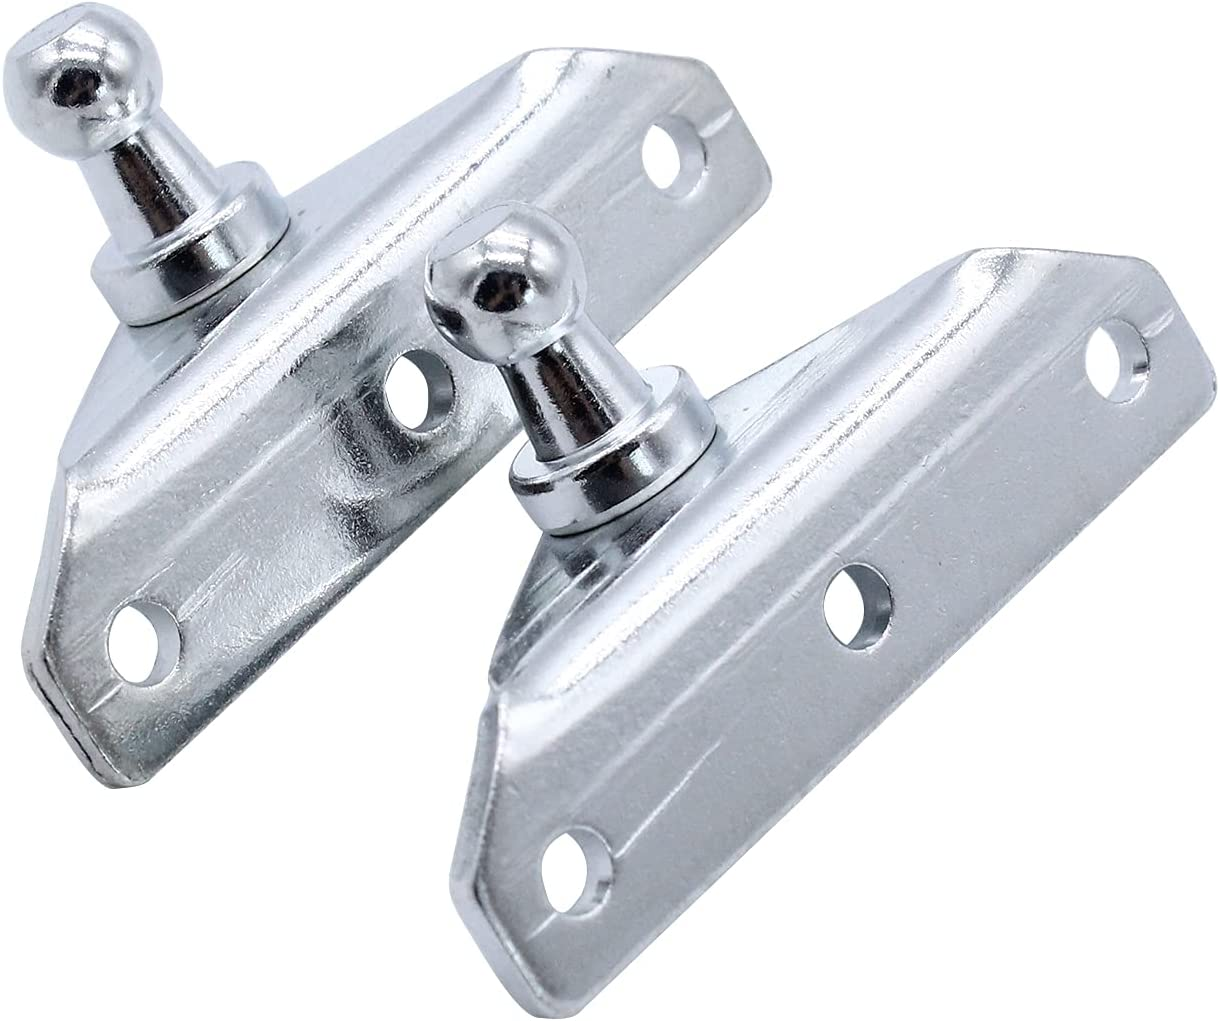 MagiDeal 4 Pcs Ball Stud Brackets for with Surprise price Fit Silver 4 years warranty Screws Str